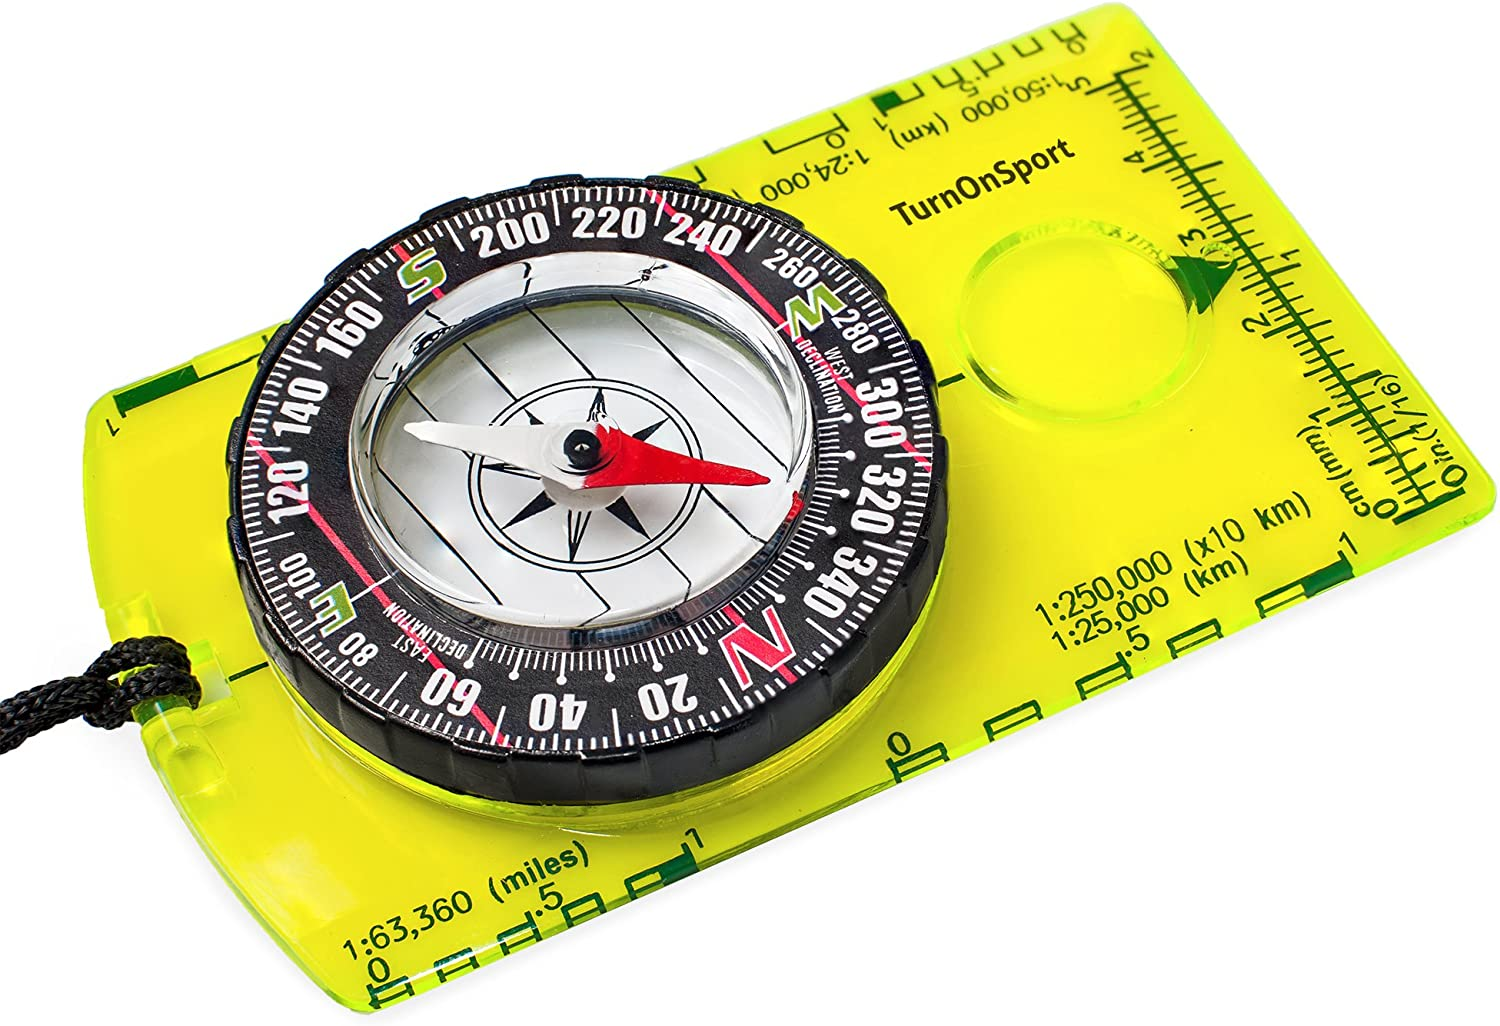 Orienteering Compass - Hiking Backpacking Compass - Advanced Scout Compass for Camping and Navigation - Boy Scout Compass for Kids - Professional Field Compass for Map Reading - Best Survival Gifts : Sports & Outdoors